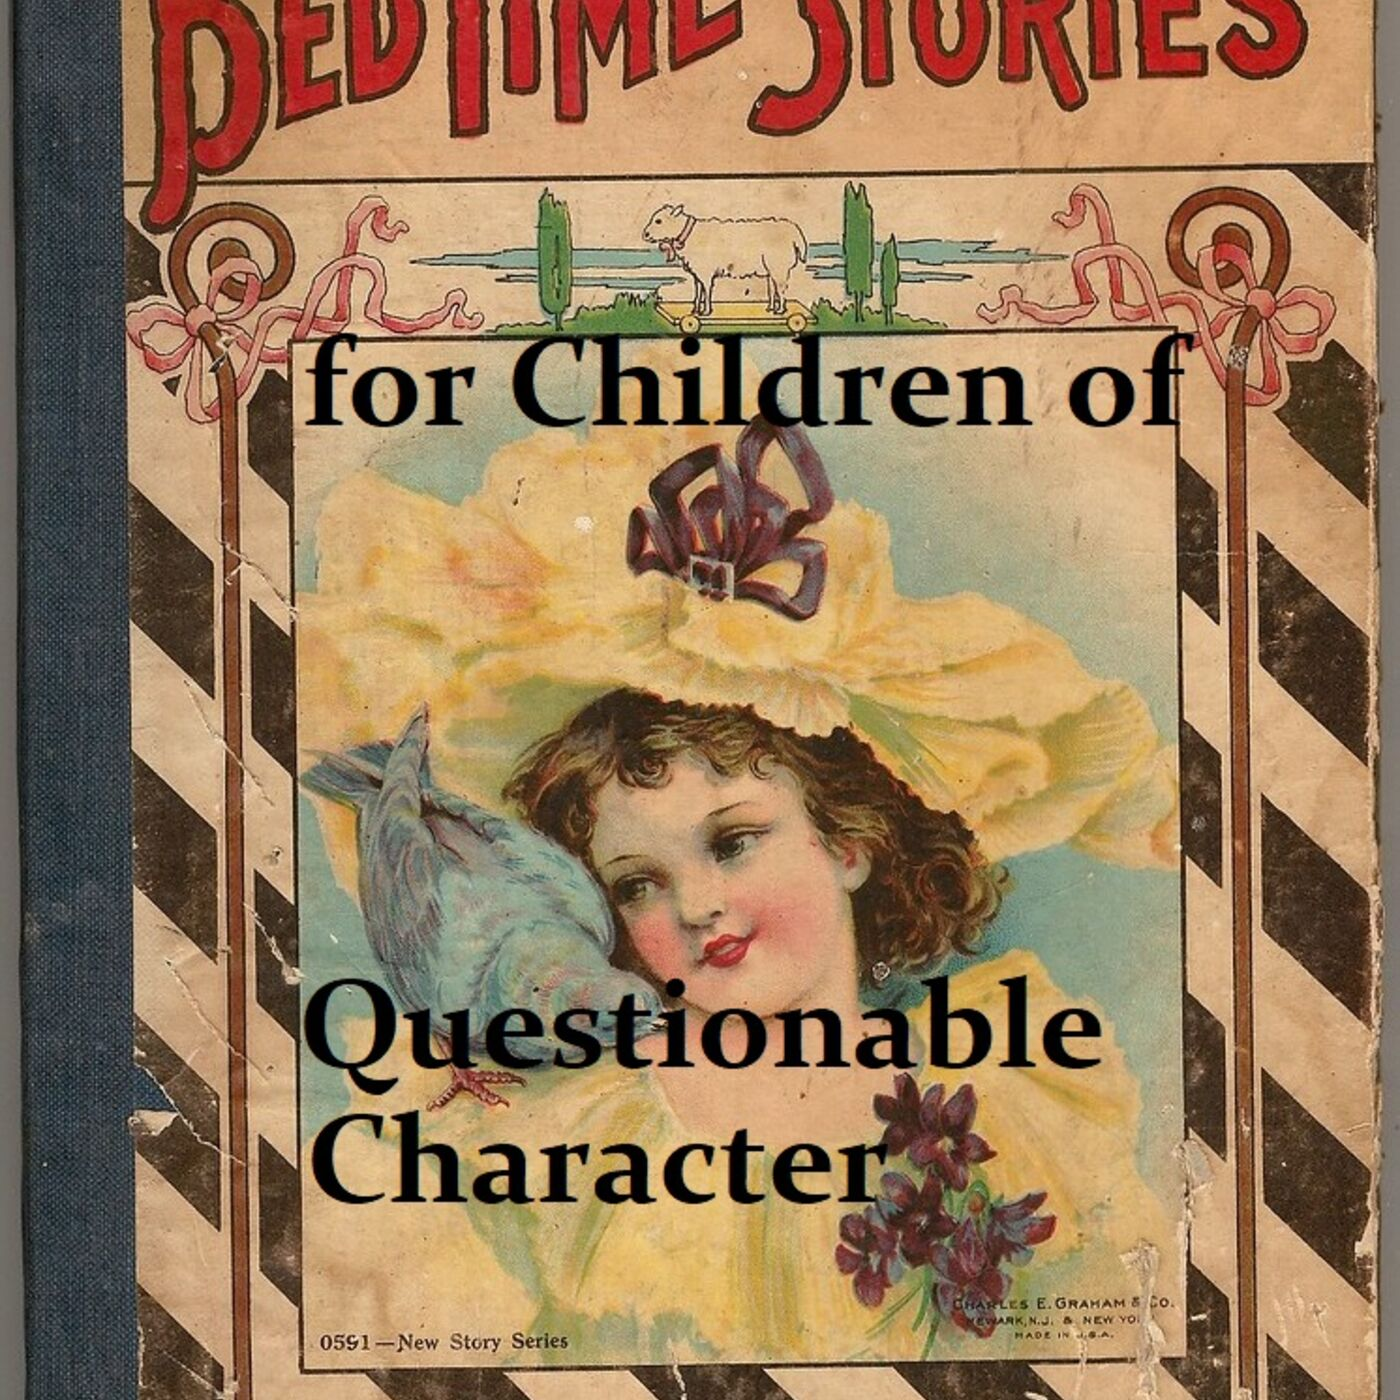 Bedtime Stories for Children of Questionable Character